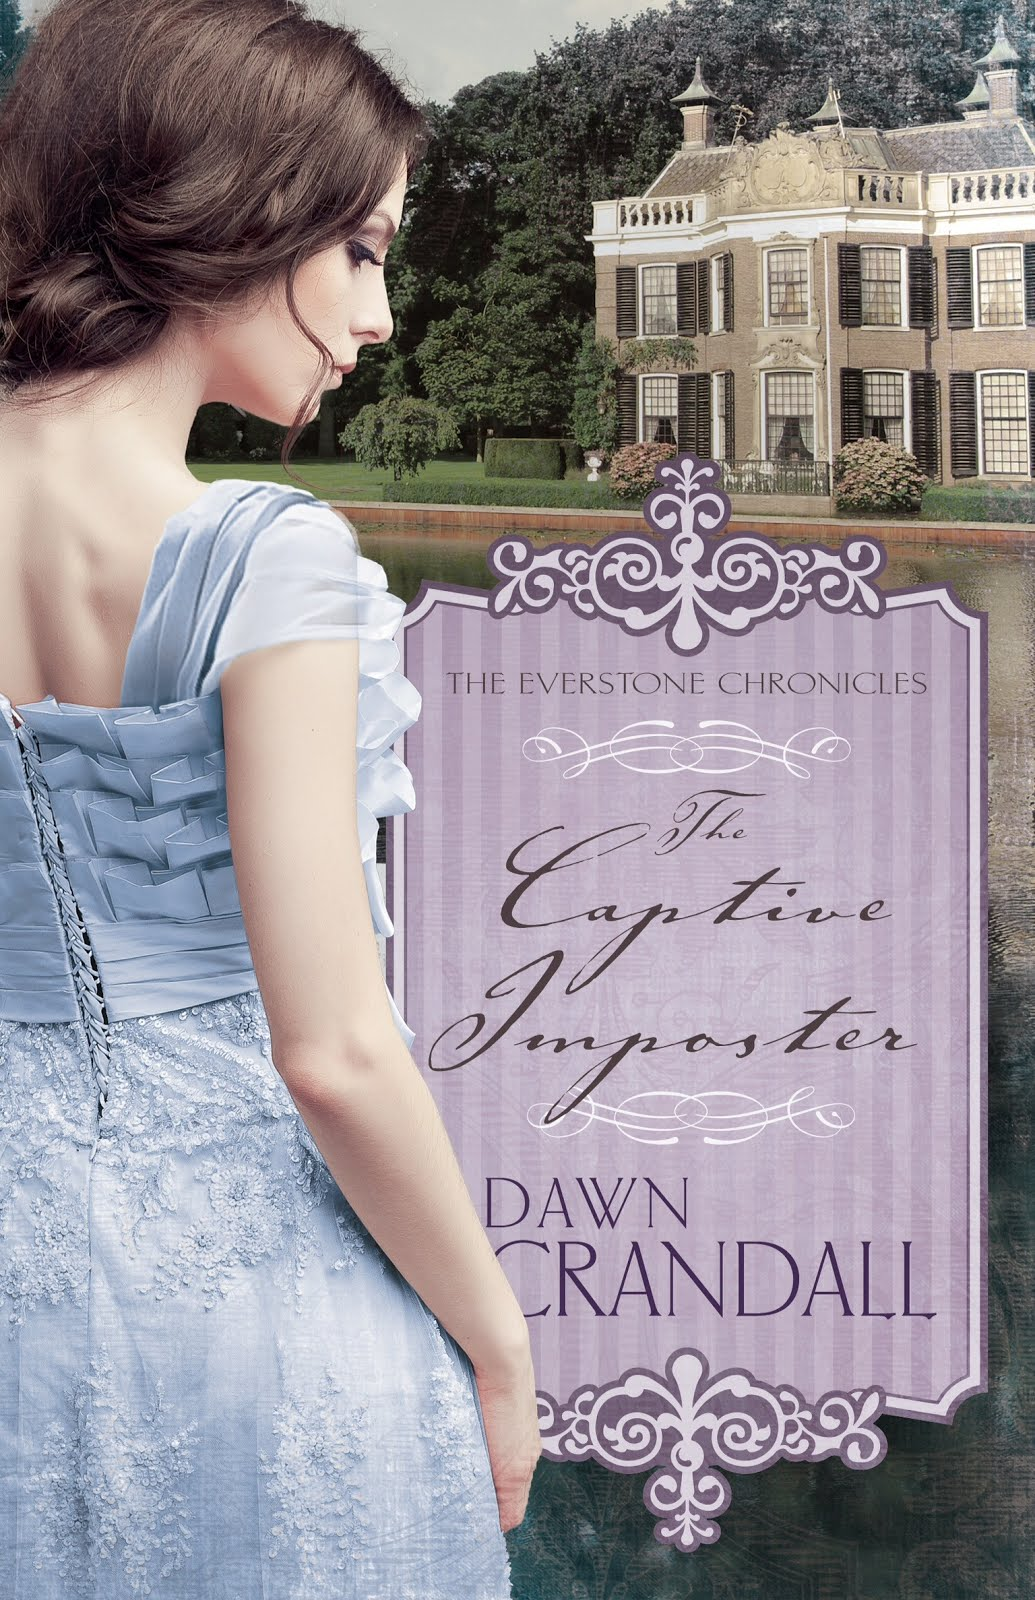 The Everstone Chronicles #3 -- The Captive Imposter!